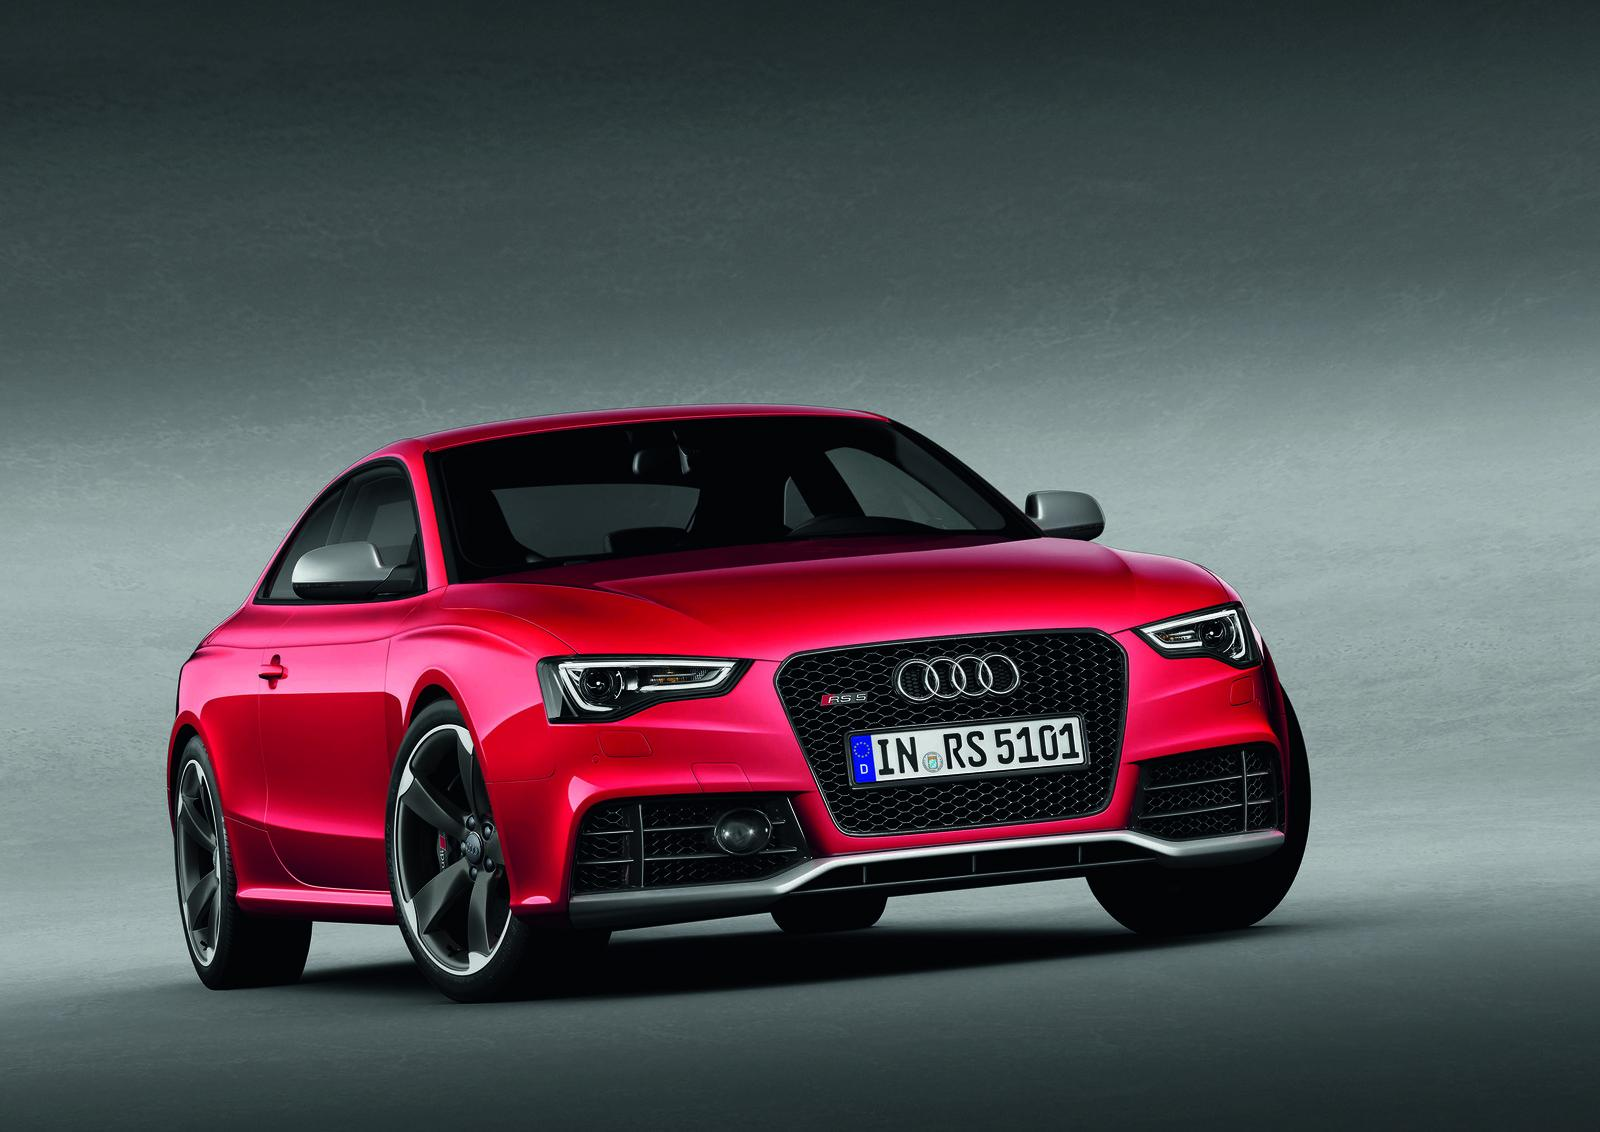 2012 Audi RS5 Coupe 2 2012 Audi RS5 Coupe with V8 Powerplant